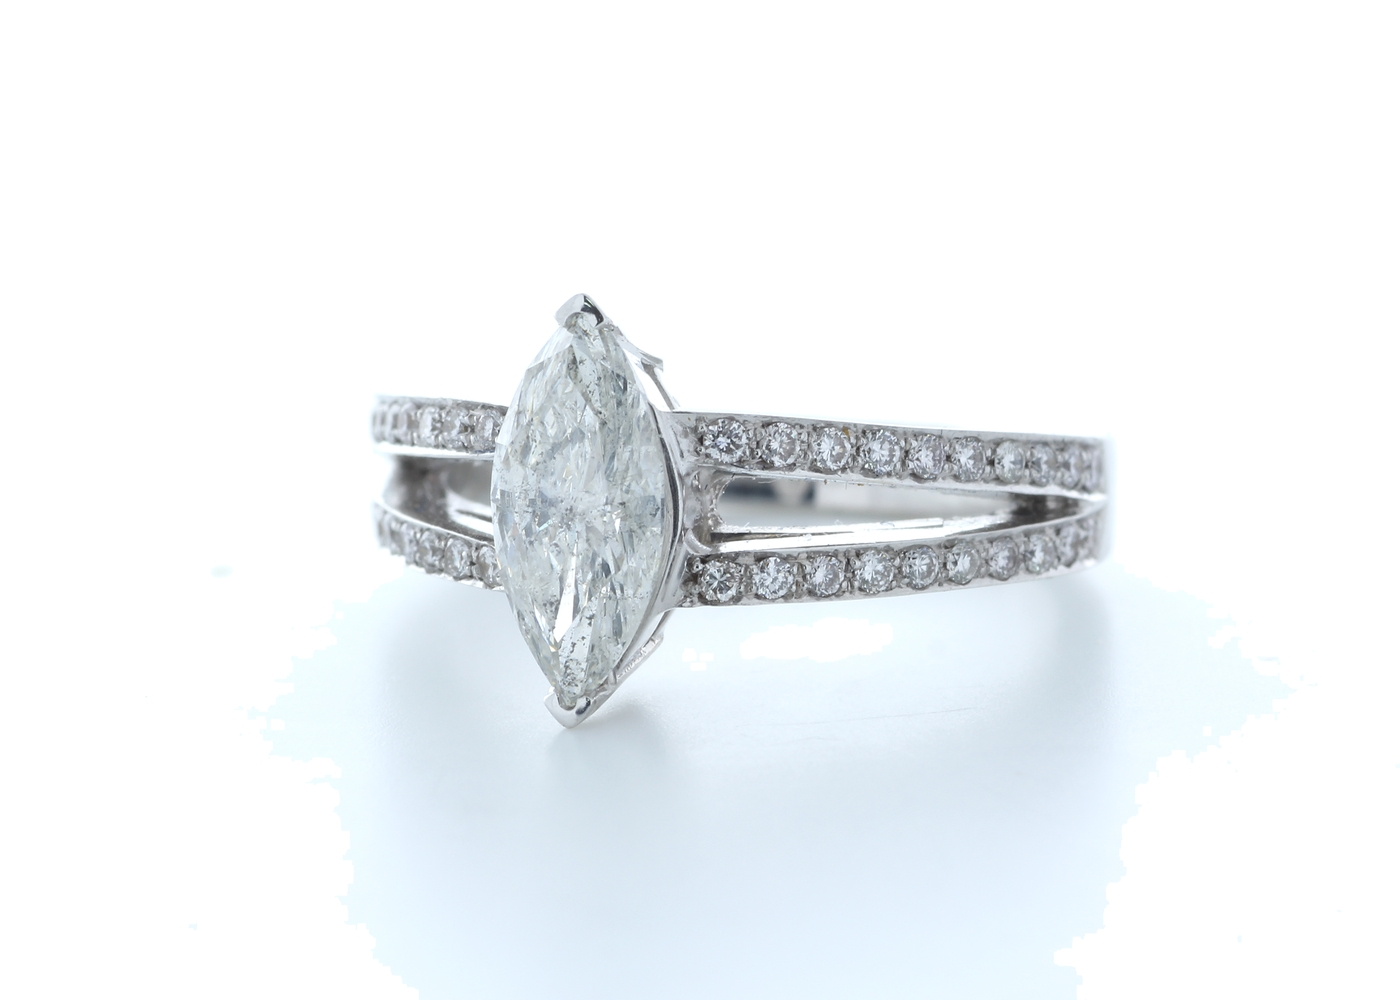 18k White Gold Marquise Cut Diamond Ring 1.41 (1.11) Carats - Image 2 of 5